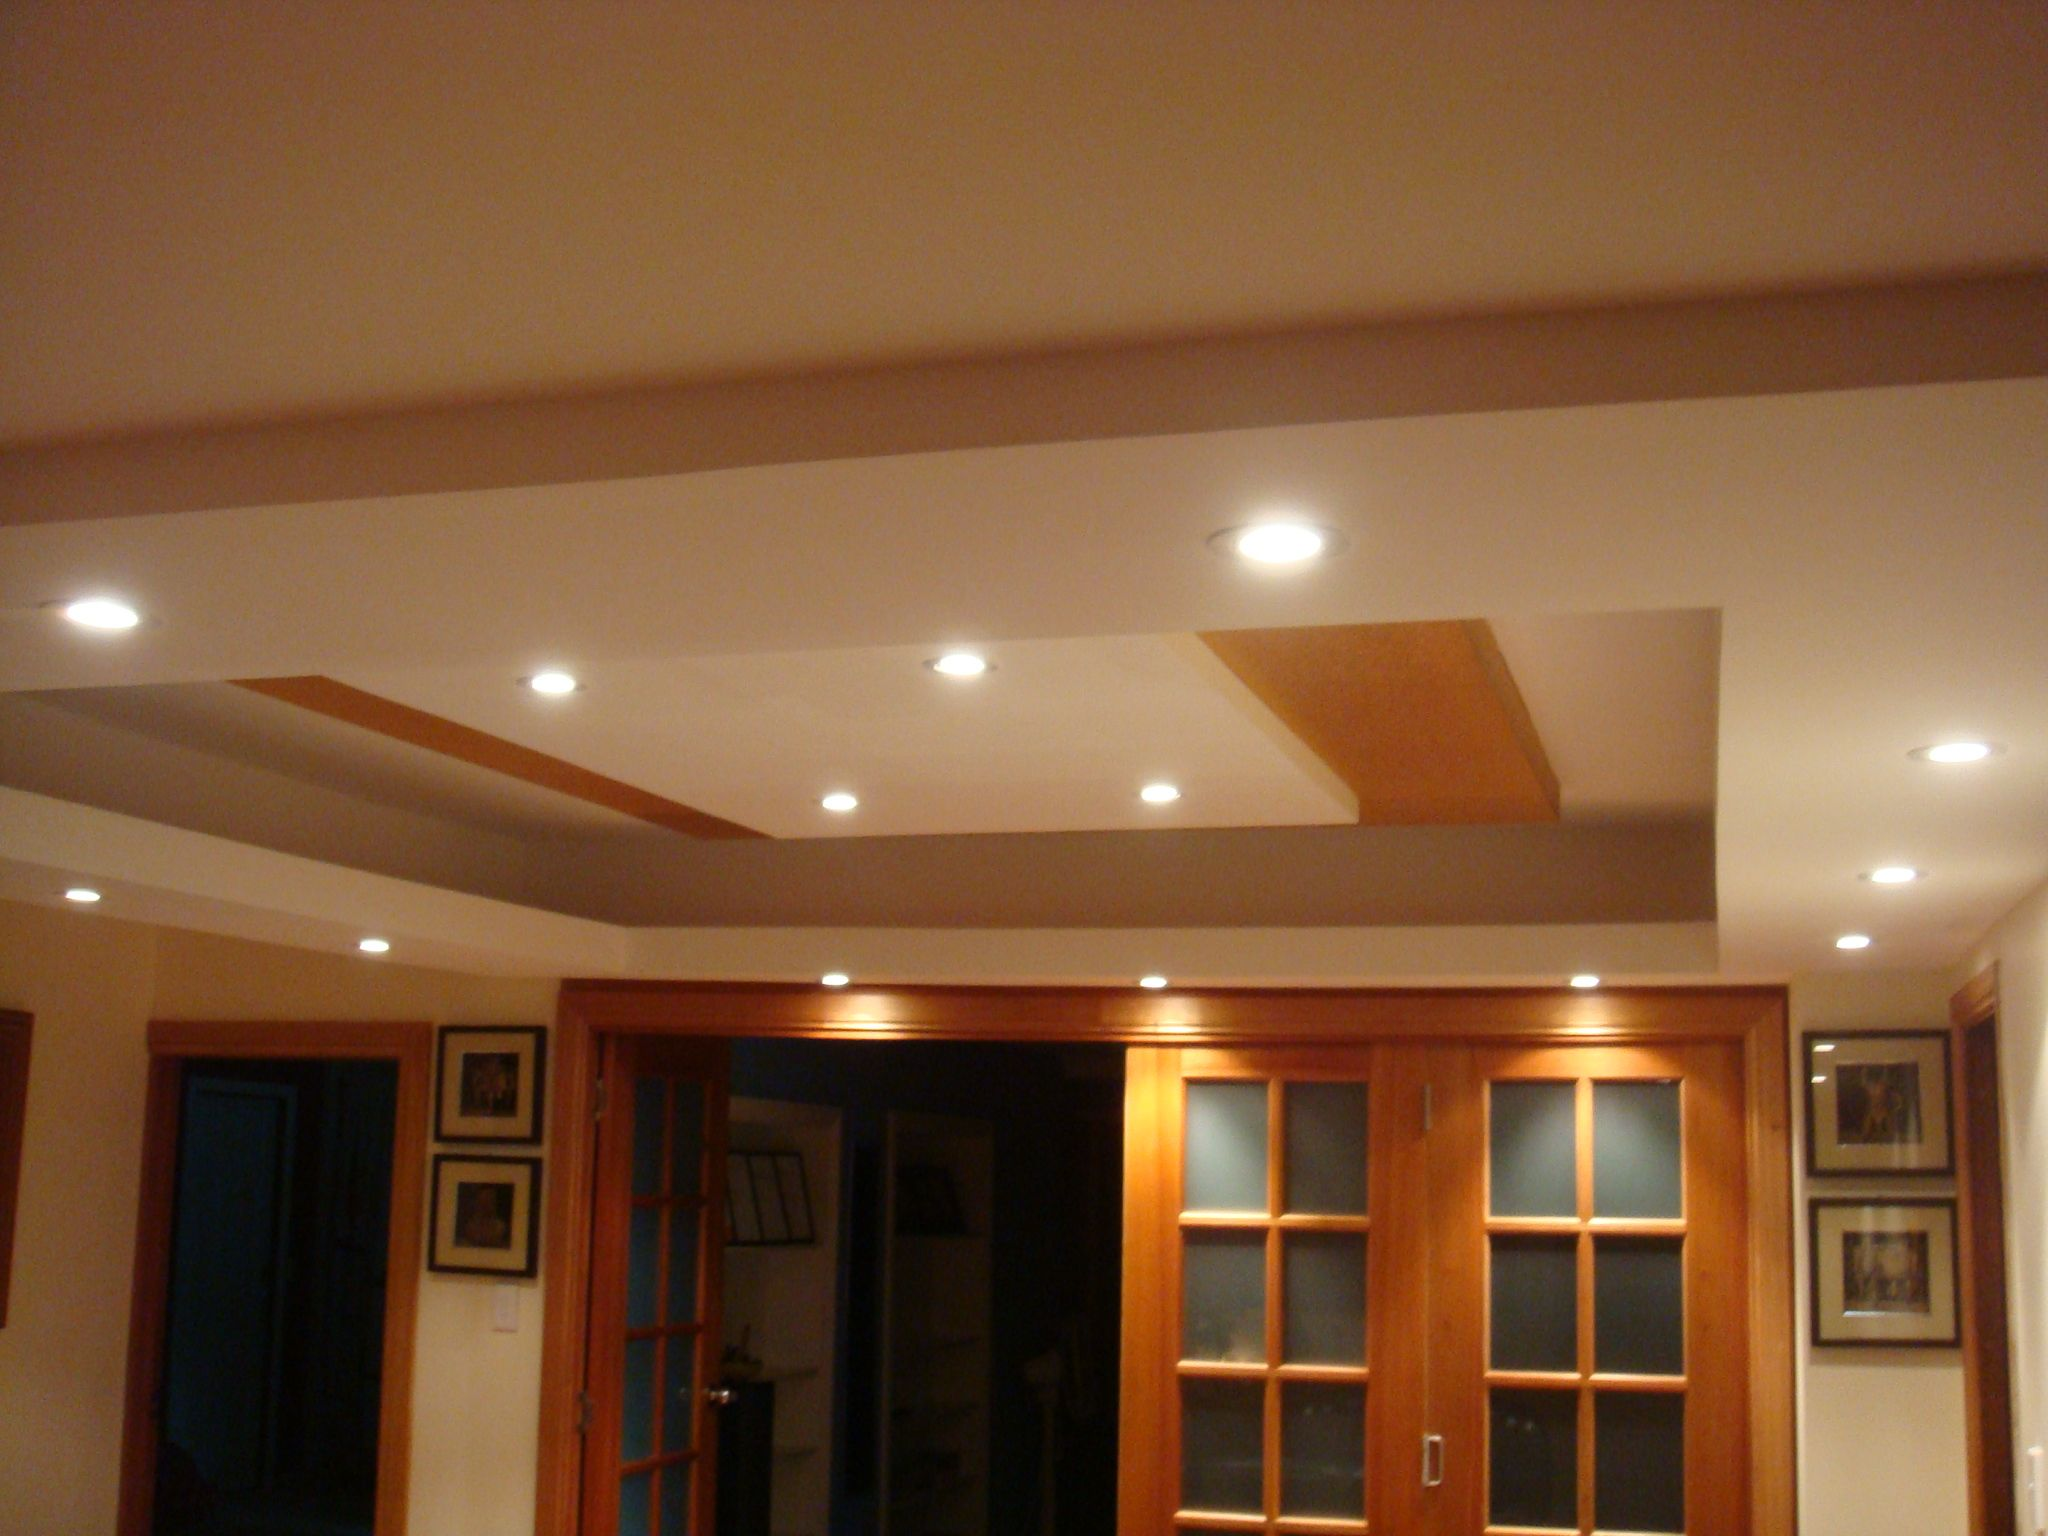 Latest gypsum ceiling designs hall image vectronstudios for Room design roof